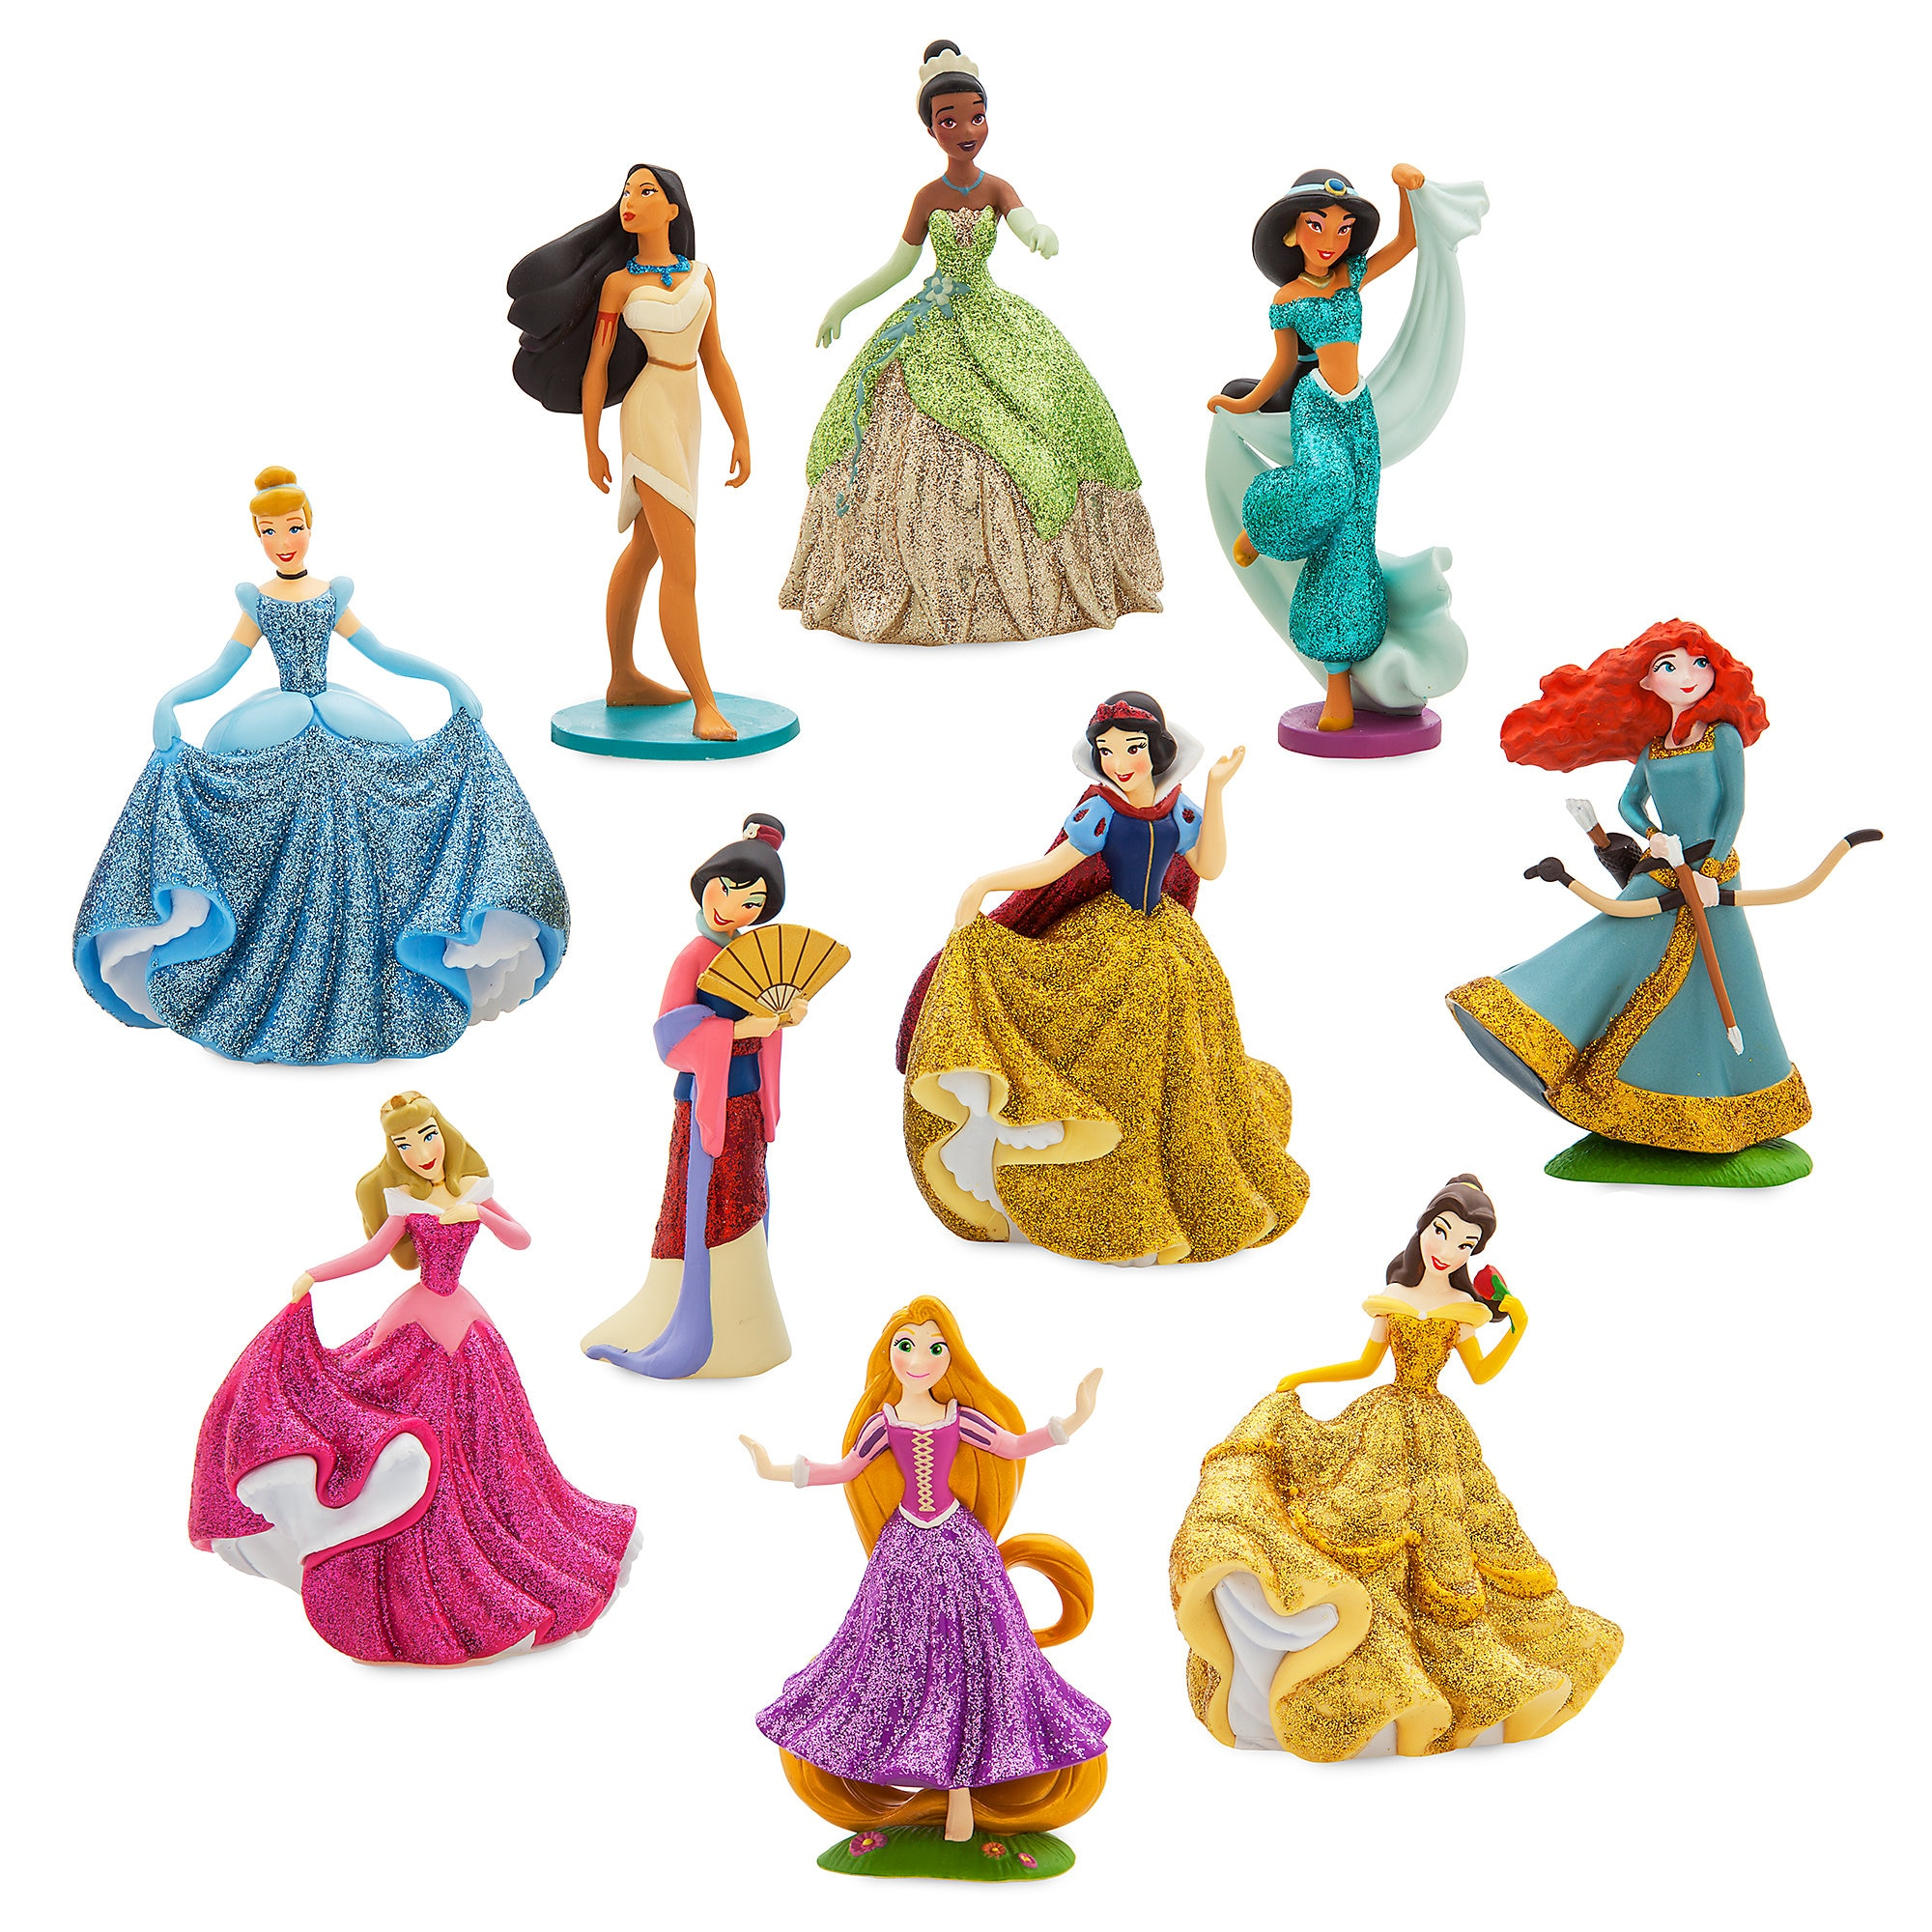 2df5ce4770f2c3 Disney Princess Deluxe Figure Play Set now available online